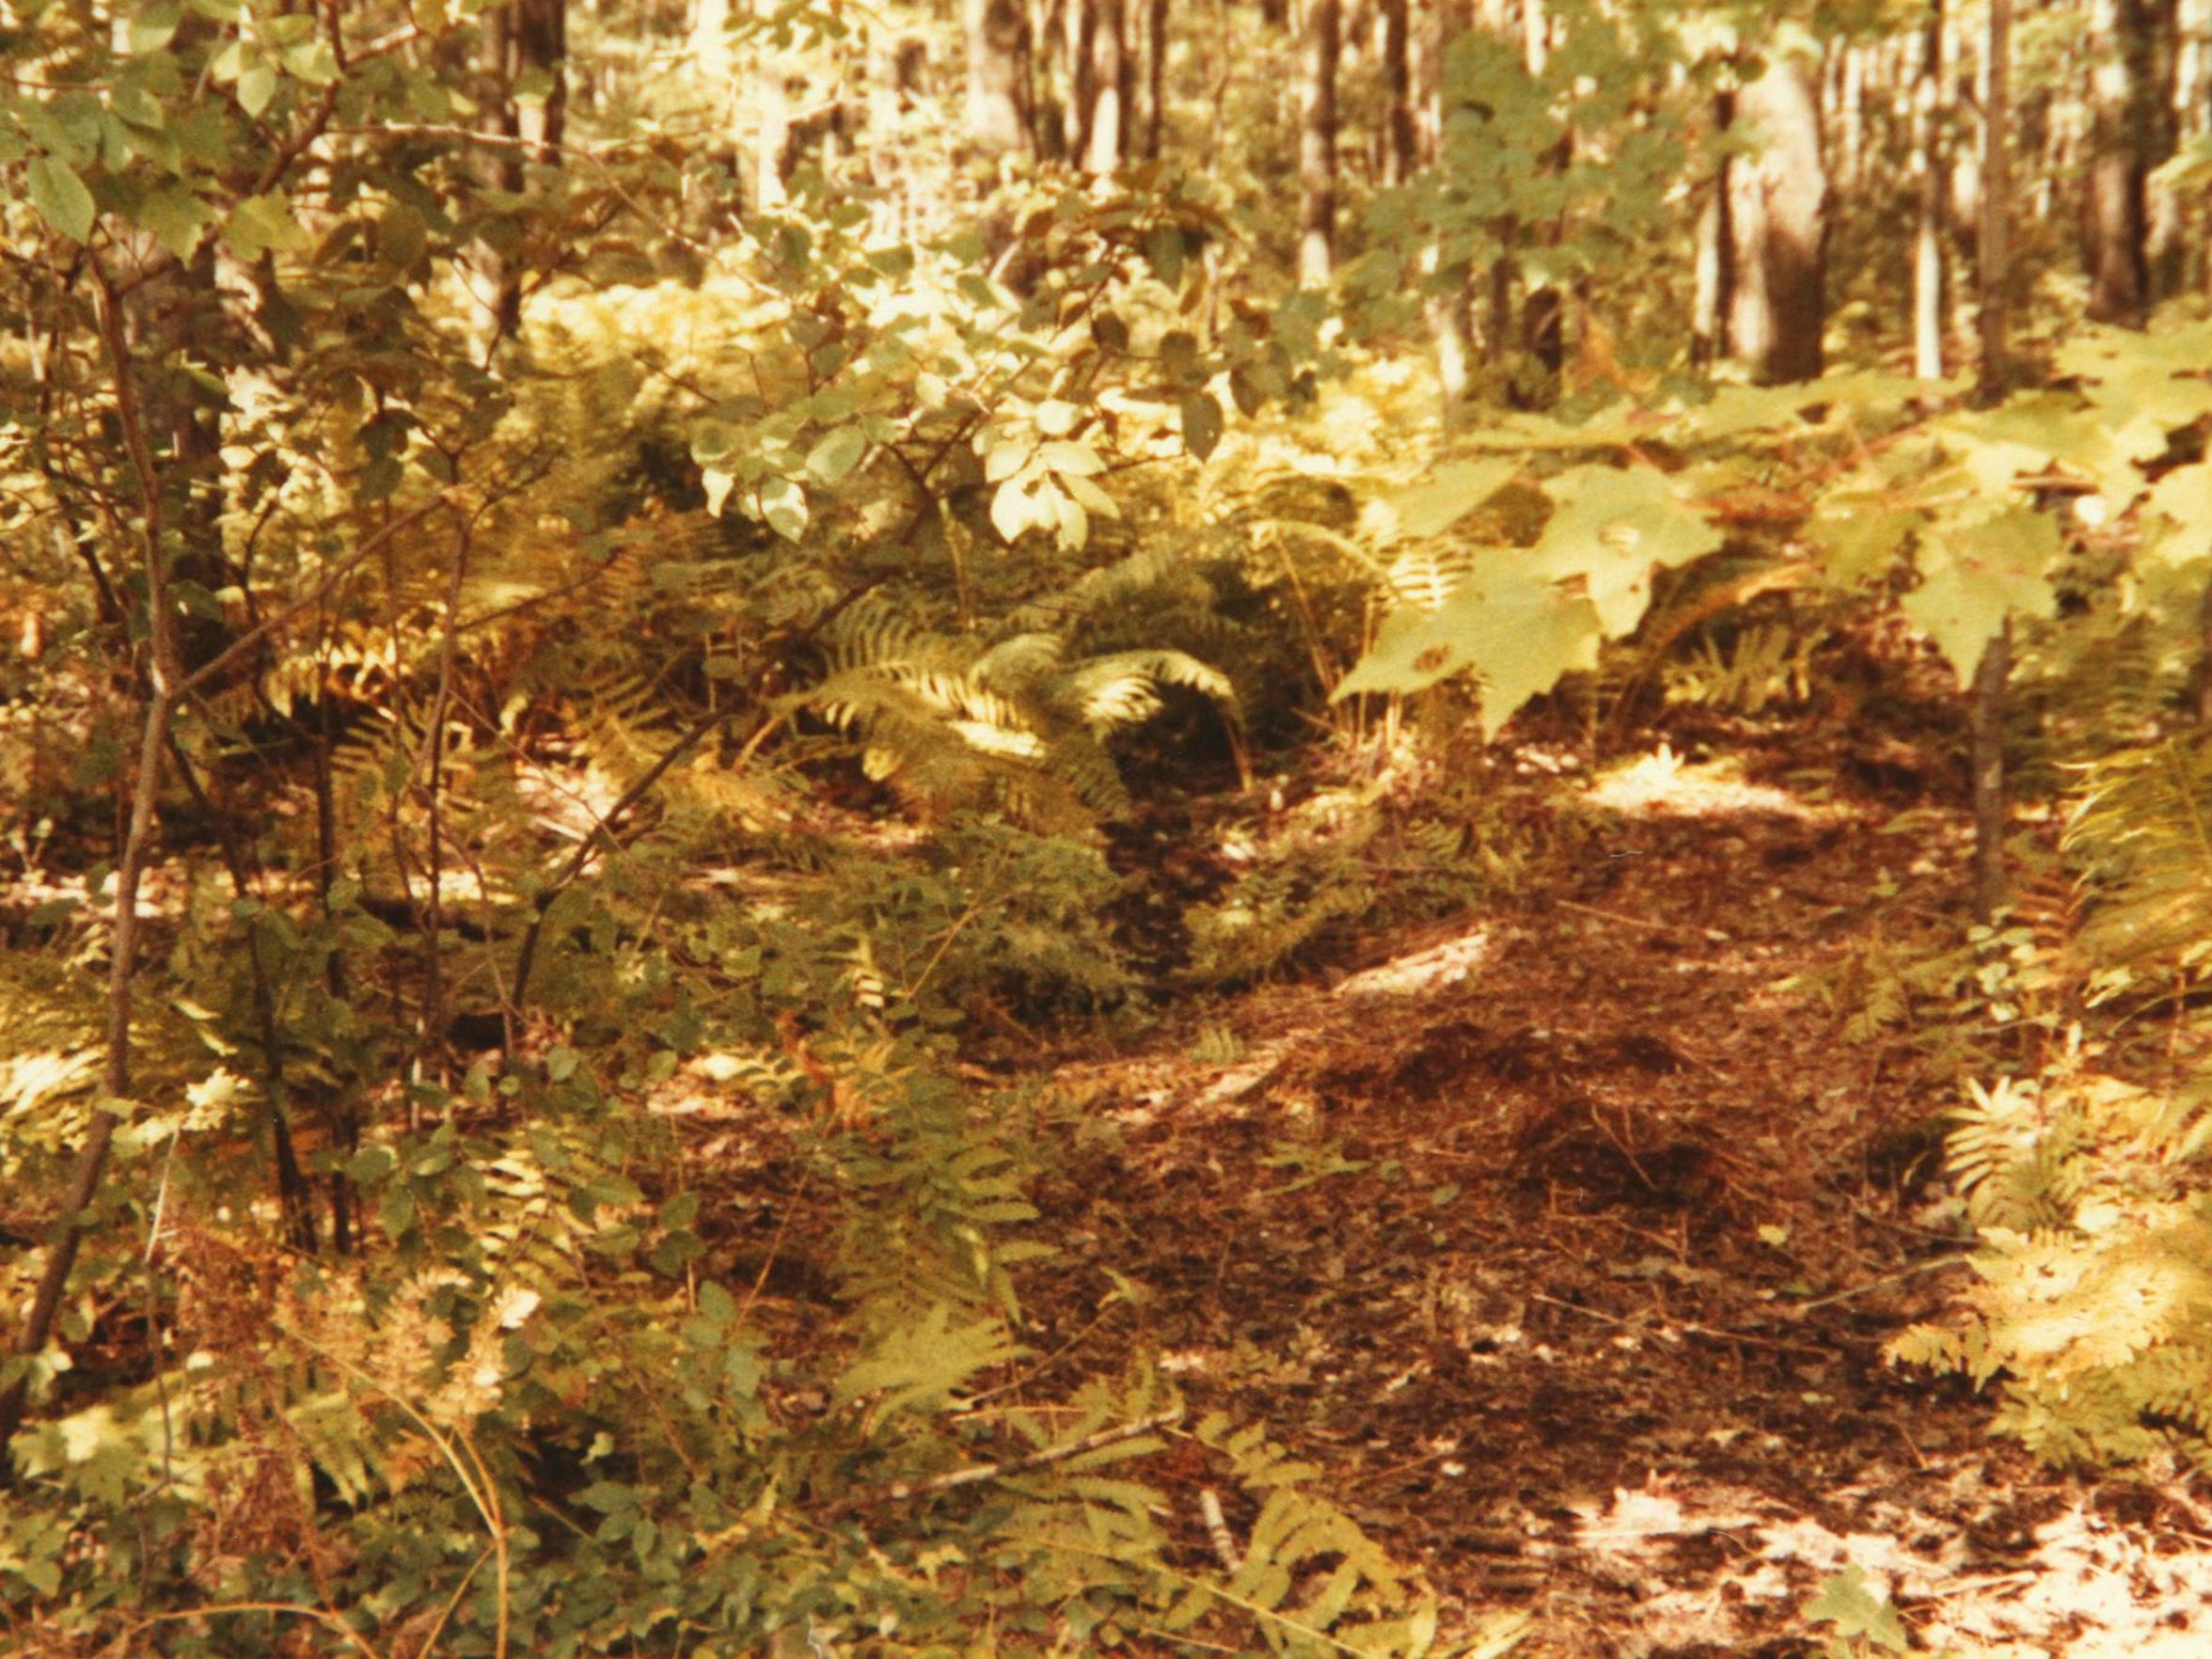 Investigators walked this trail in September 1985 and found the nude, decomposed body of Shawn Moore, a 13-year-old Green Oak Township boy who had been kidnapped, sexually assaulted and murdered.